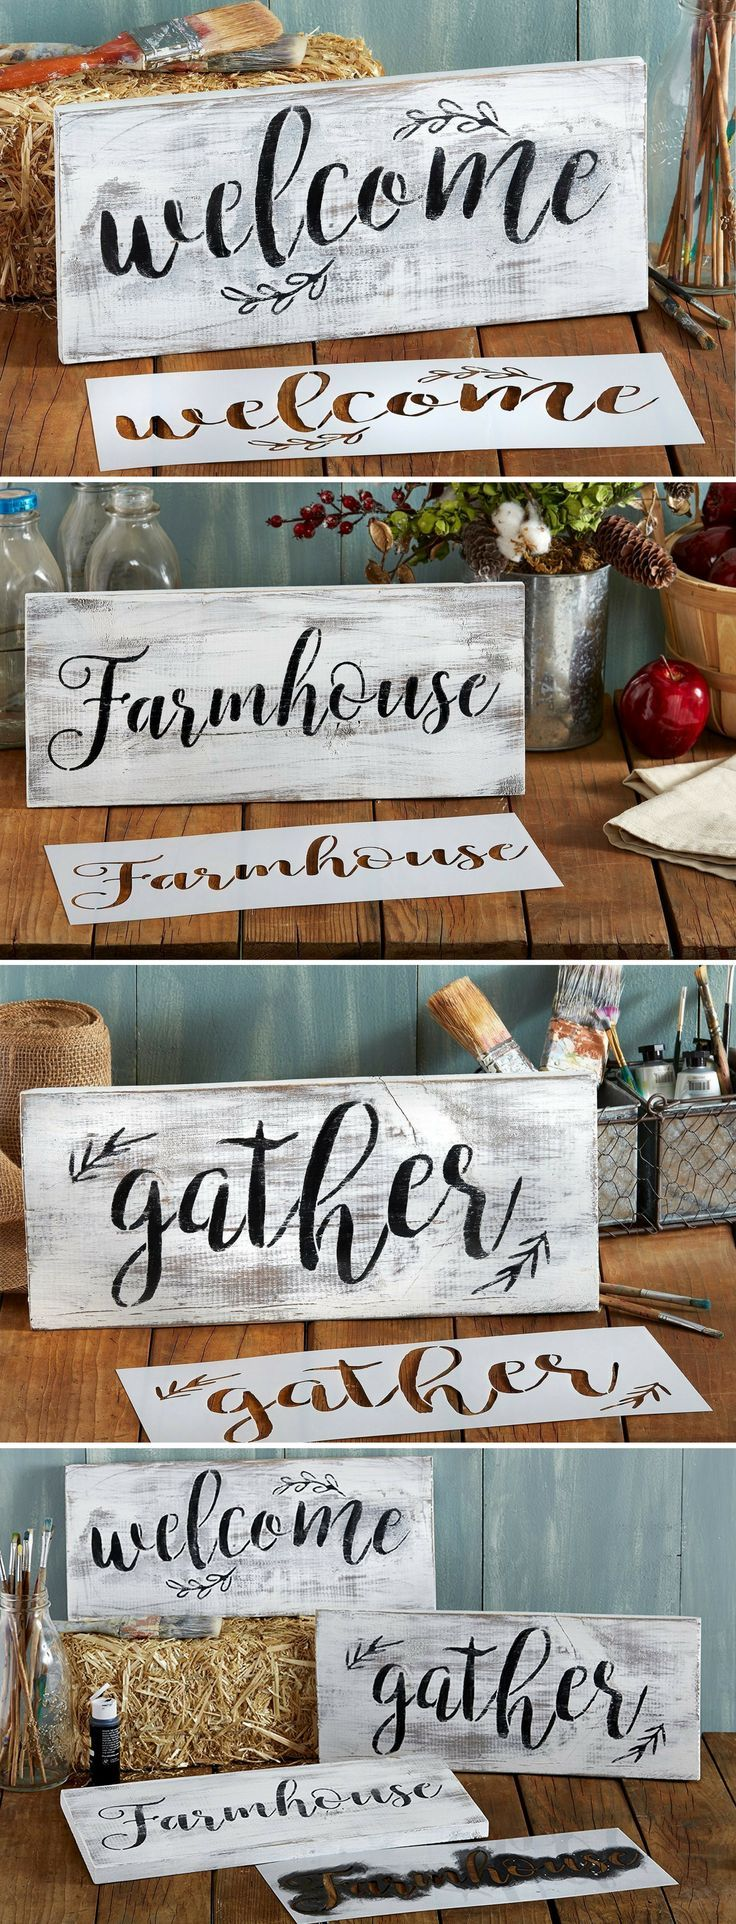 Gather welcome farmhouse stencil set large beautiful calligraphy